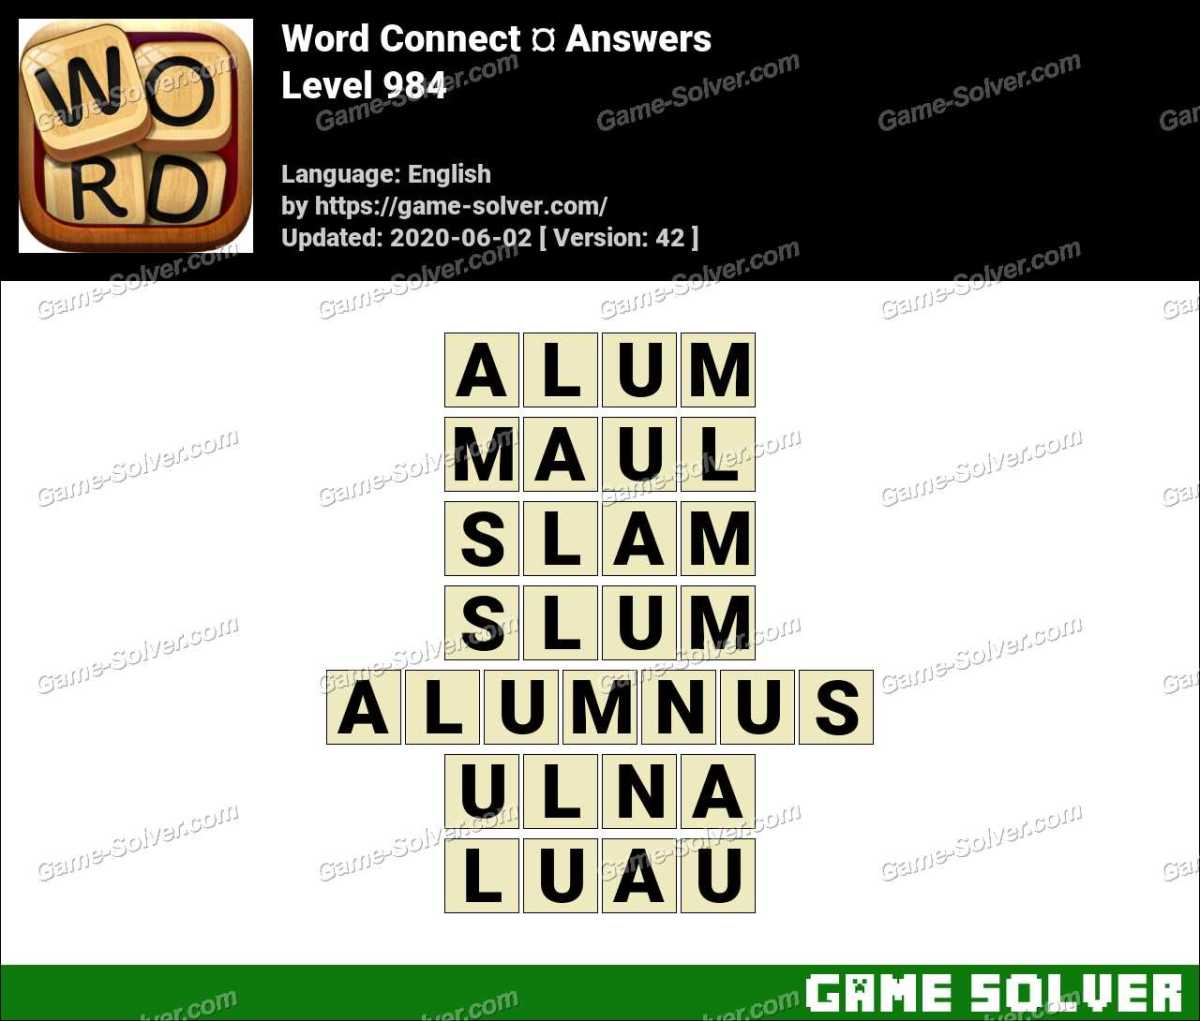 Word Connect Level 984 Answers